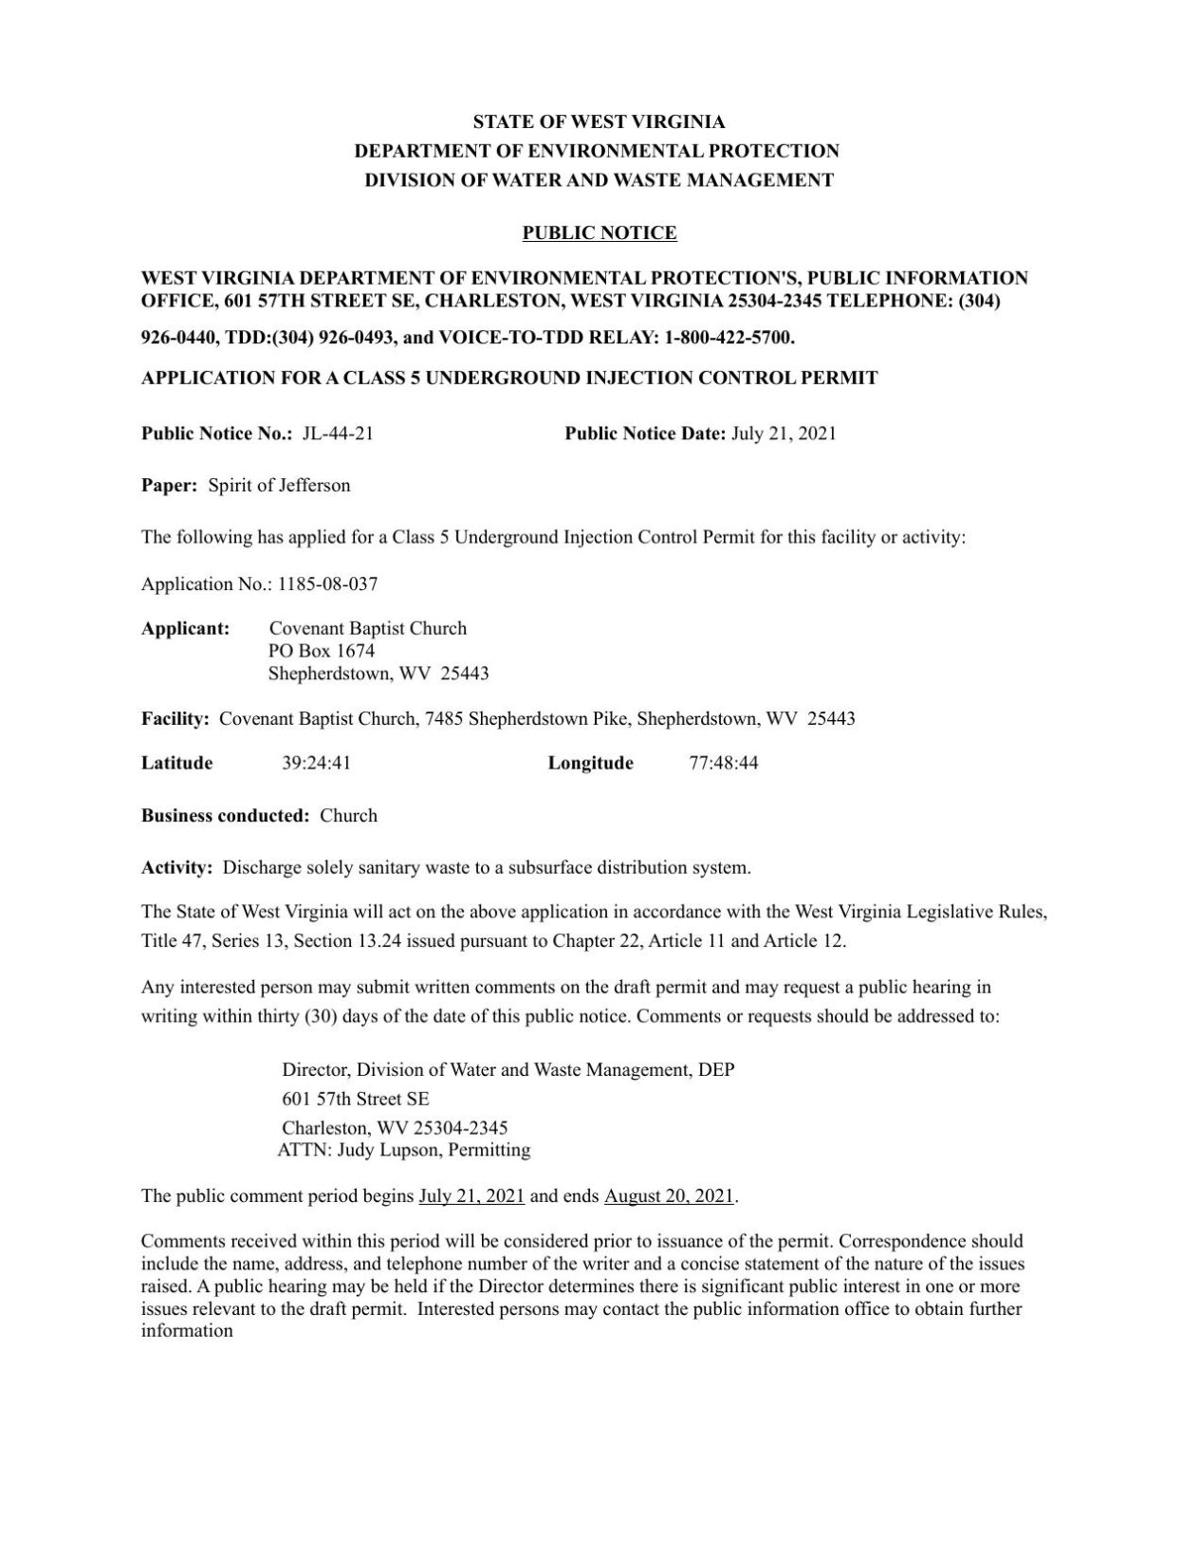 Public Notice 4 WV Dept of Environmental Protection